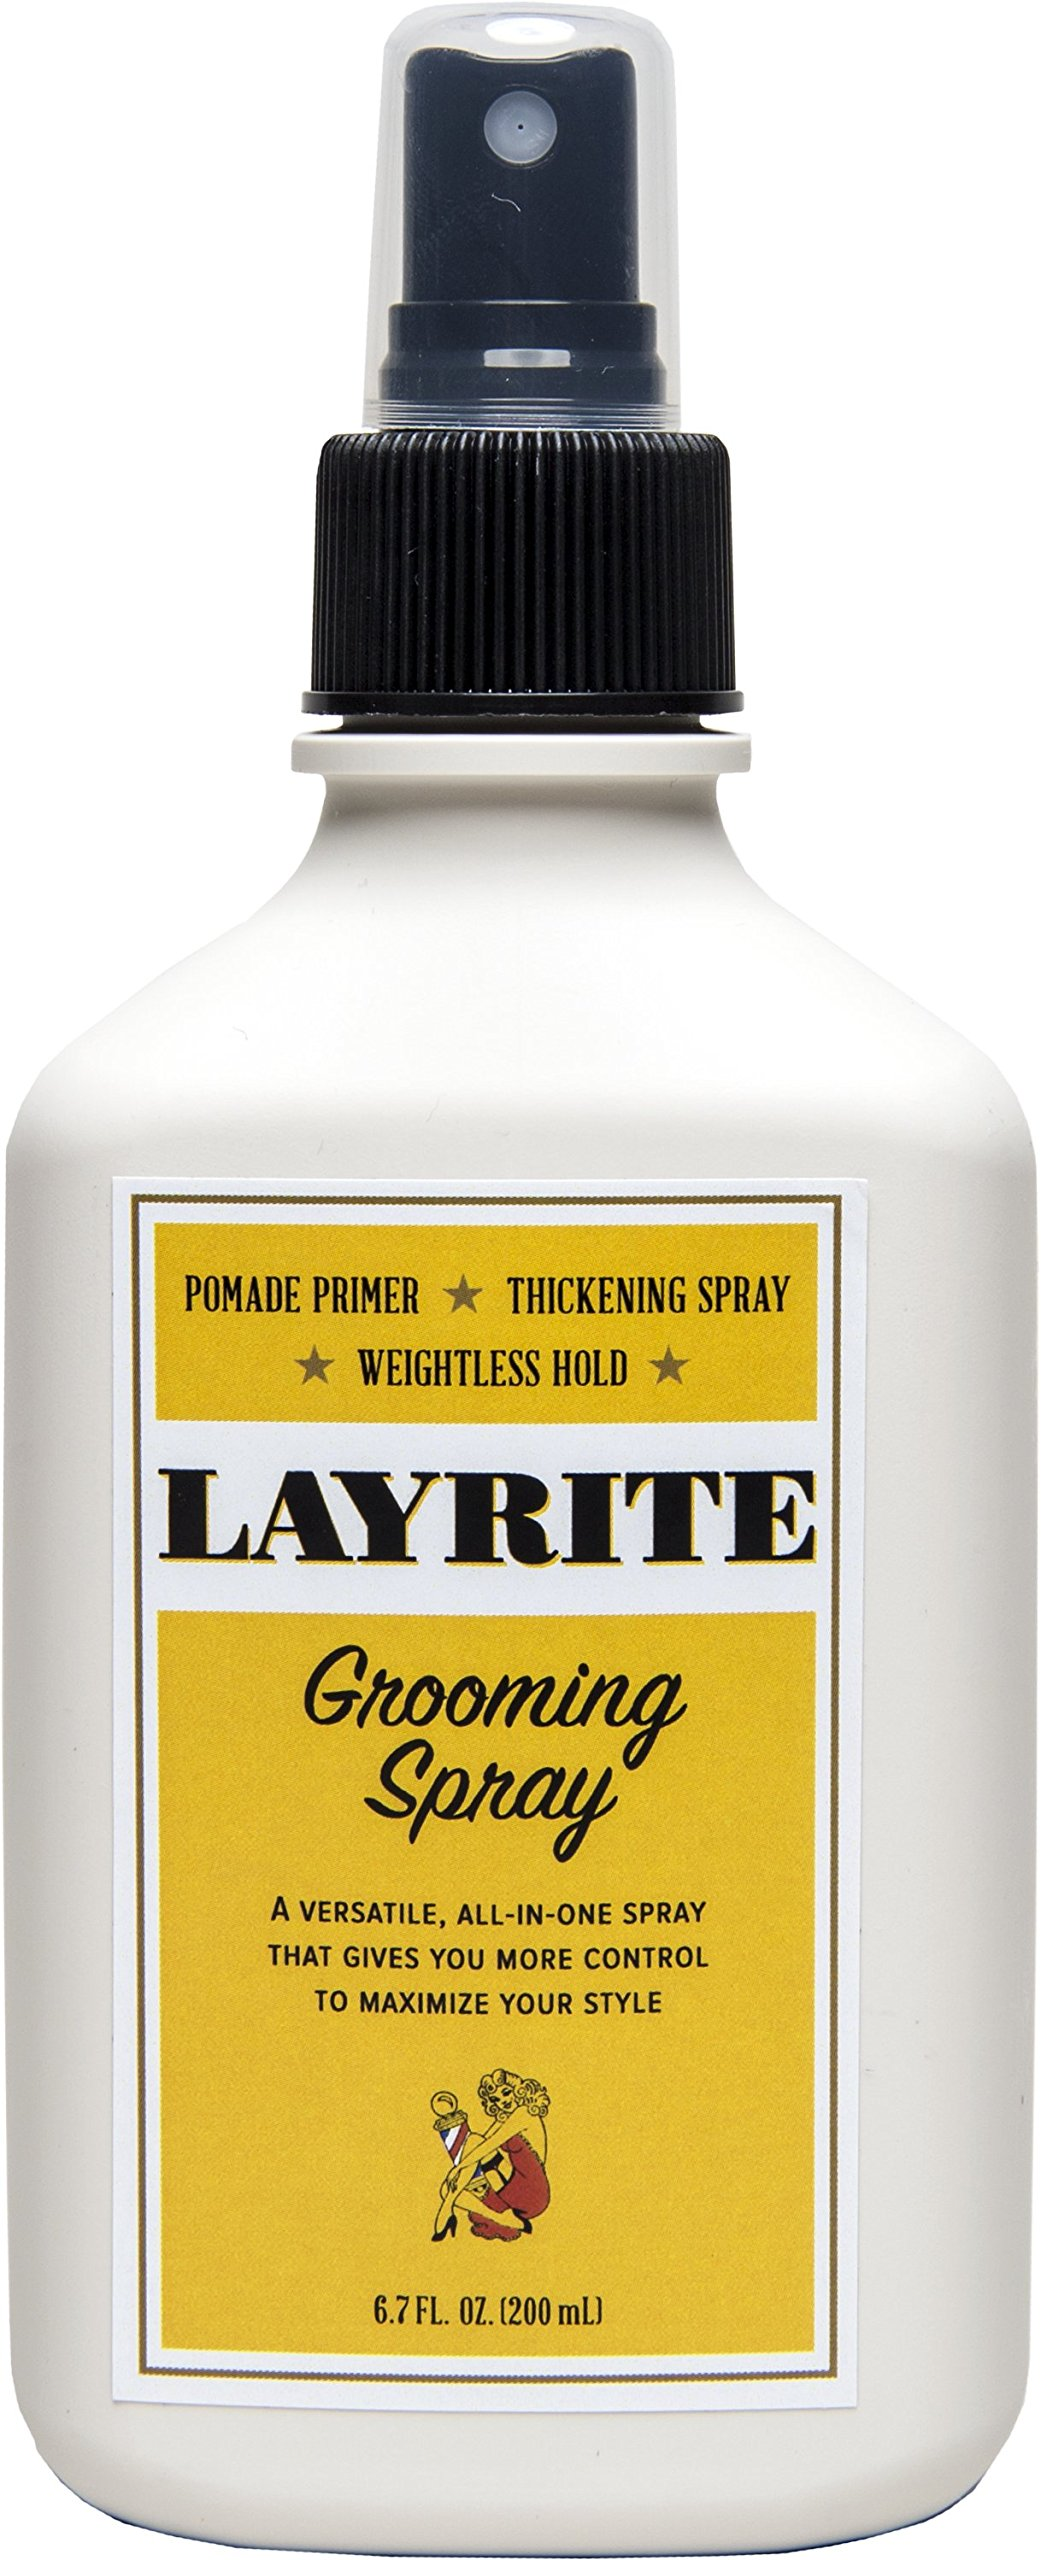 Layrite Grooming Spray, 6.7 oz. by Layrite